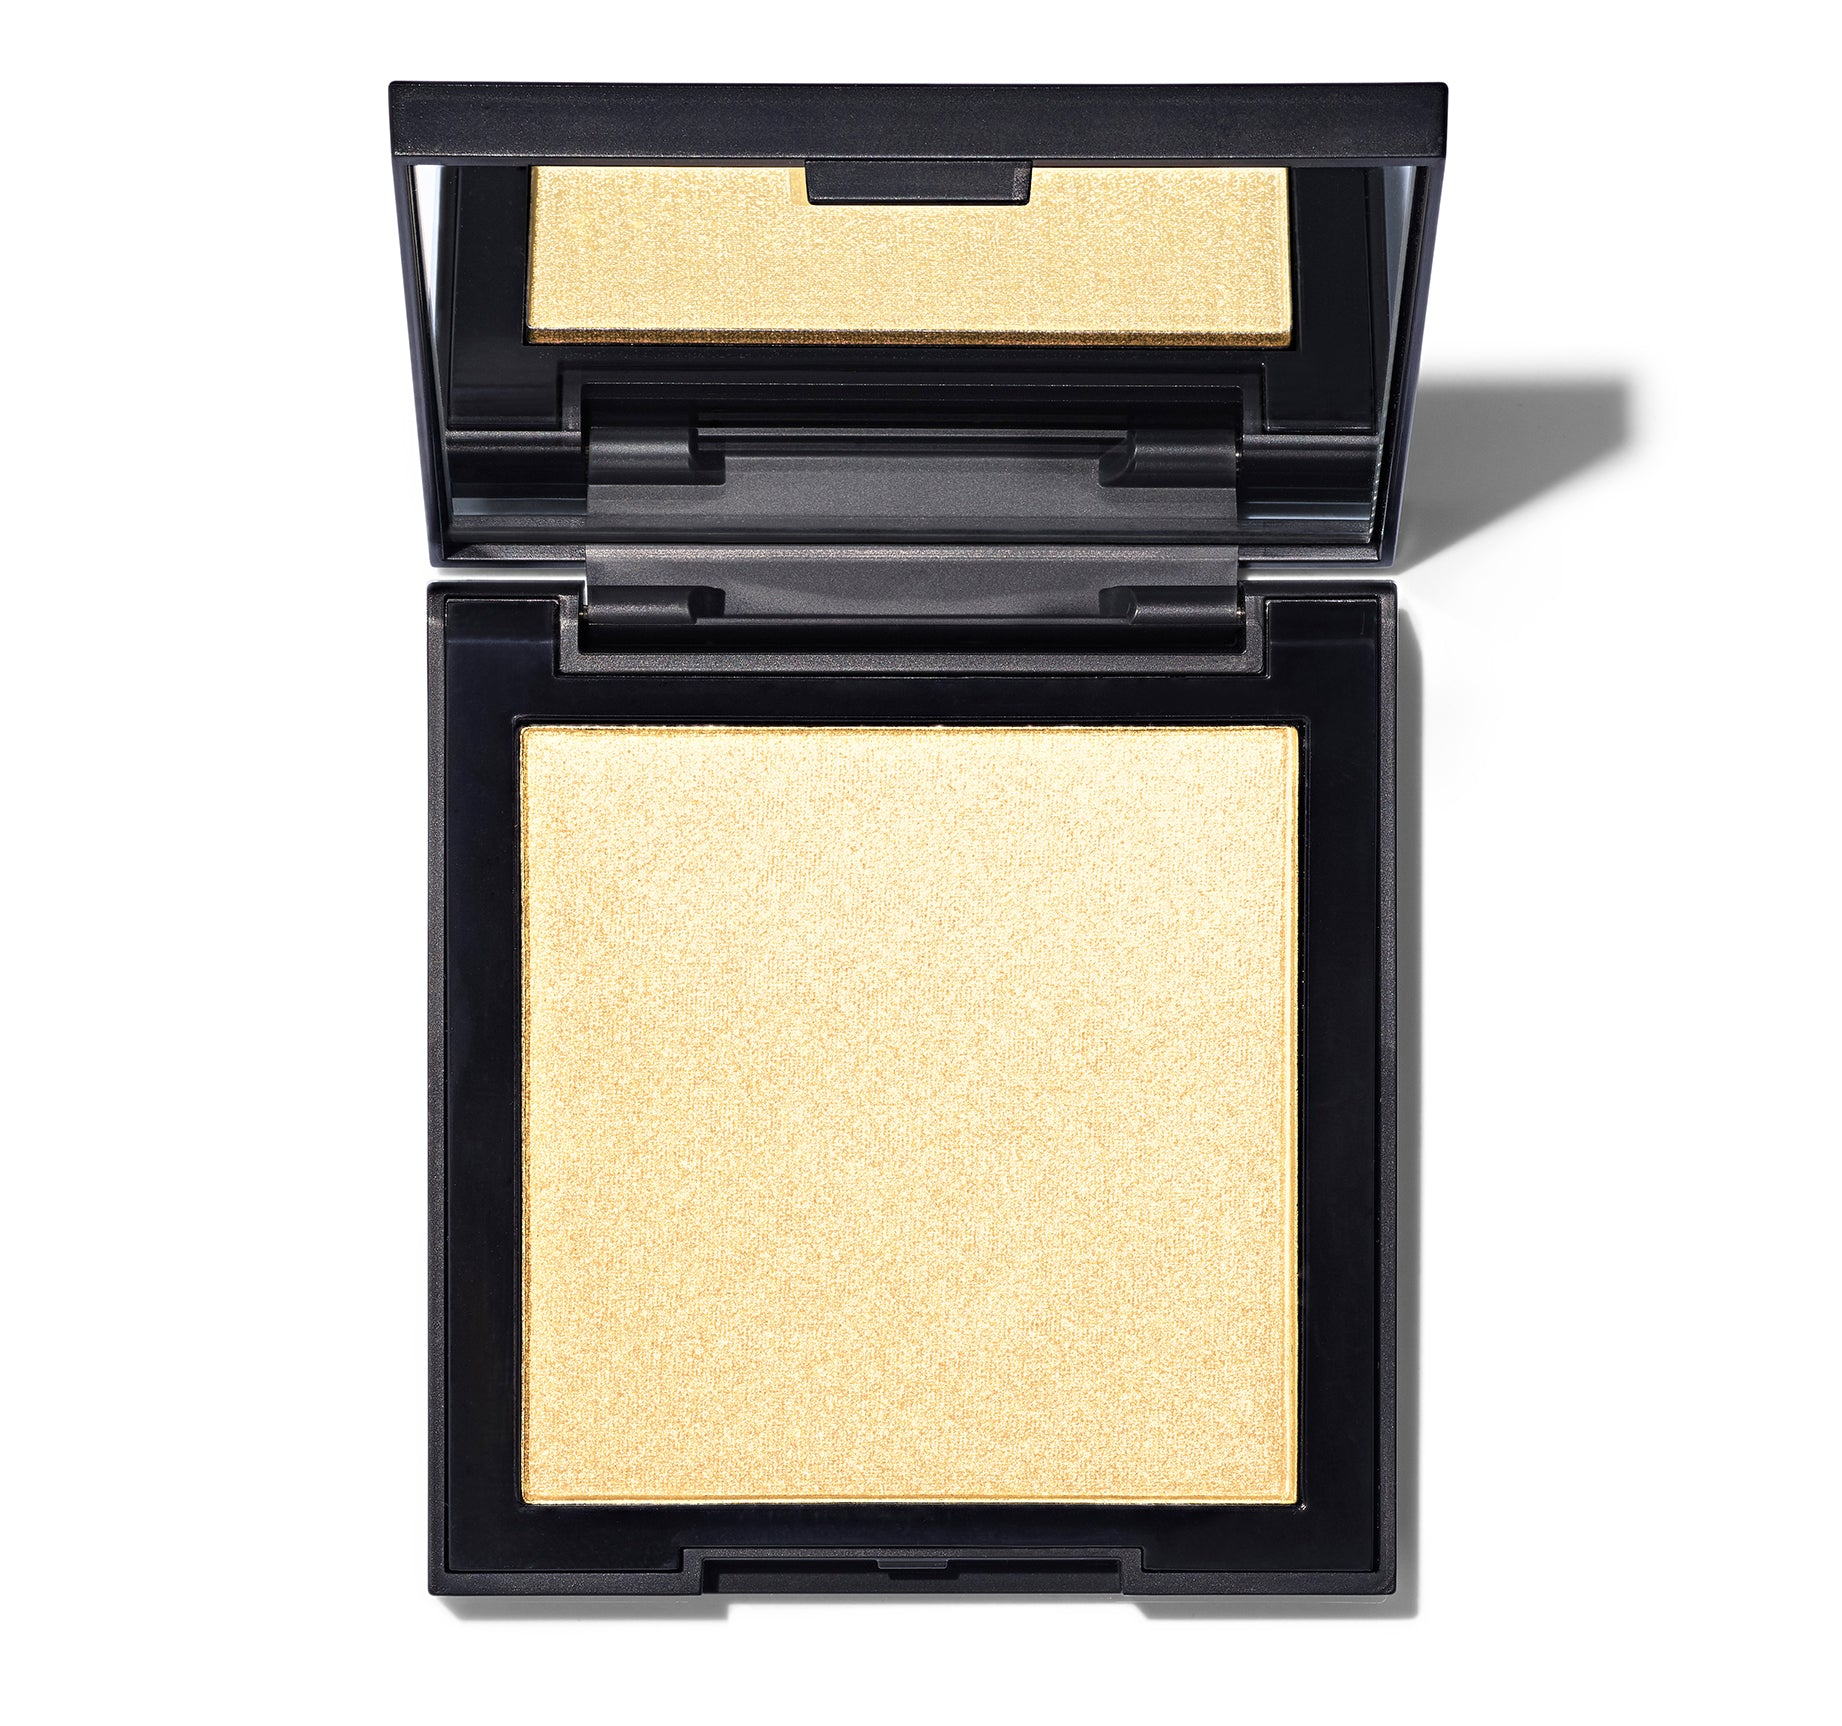 HIGHLIGHTER - LIT, agrandir l'image